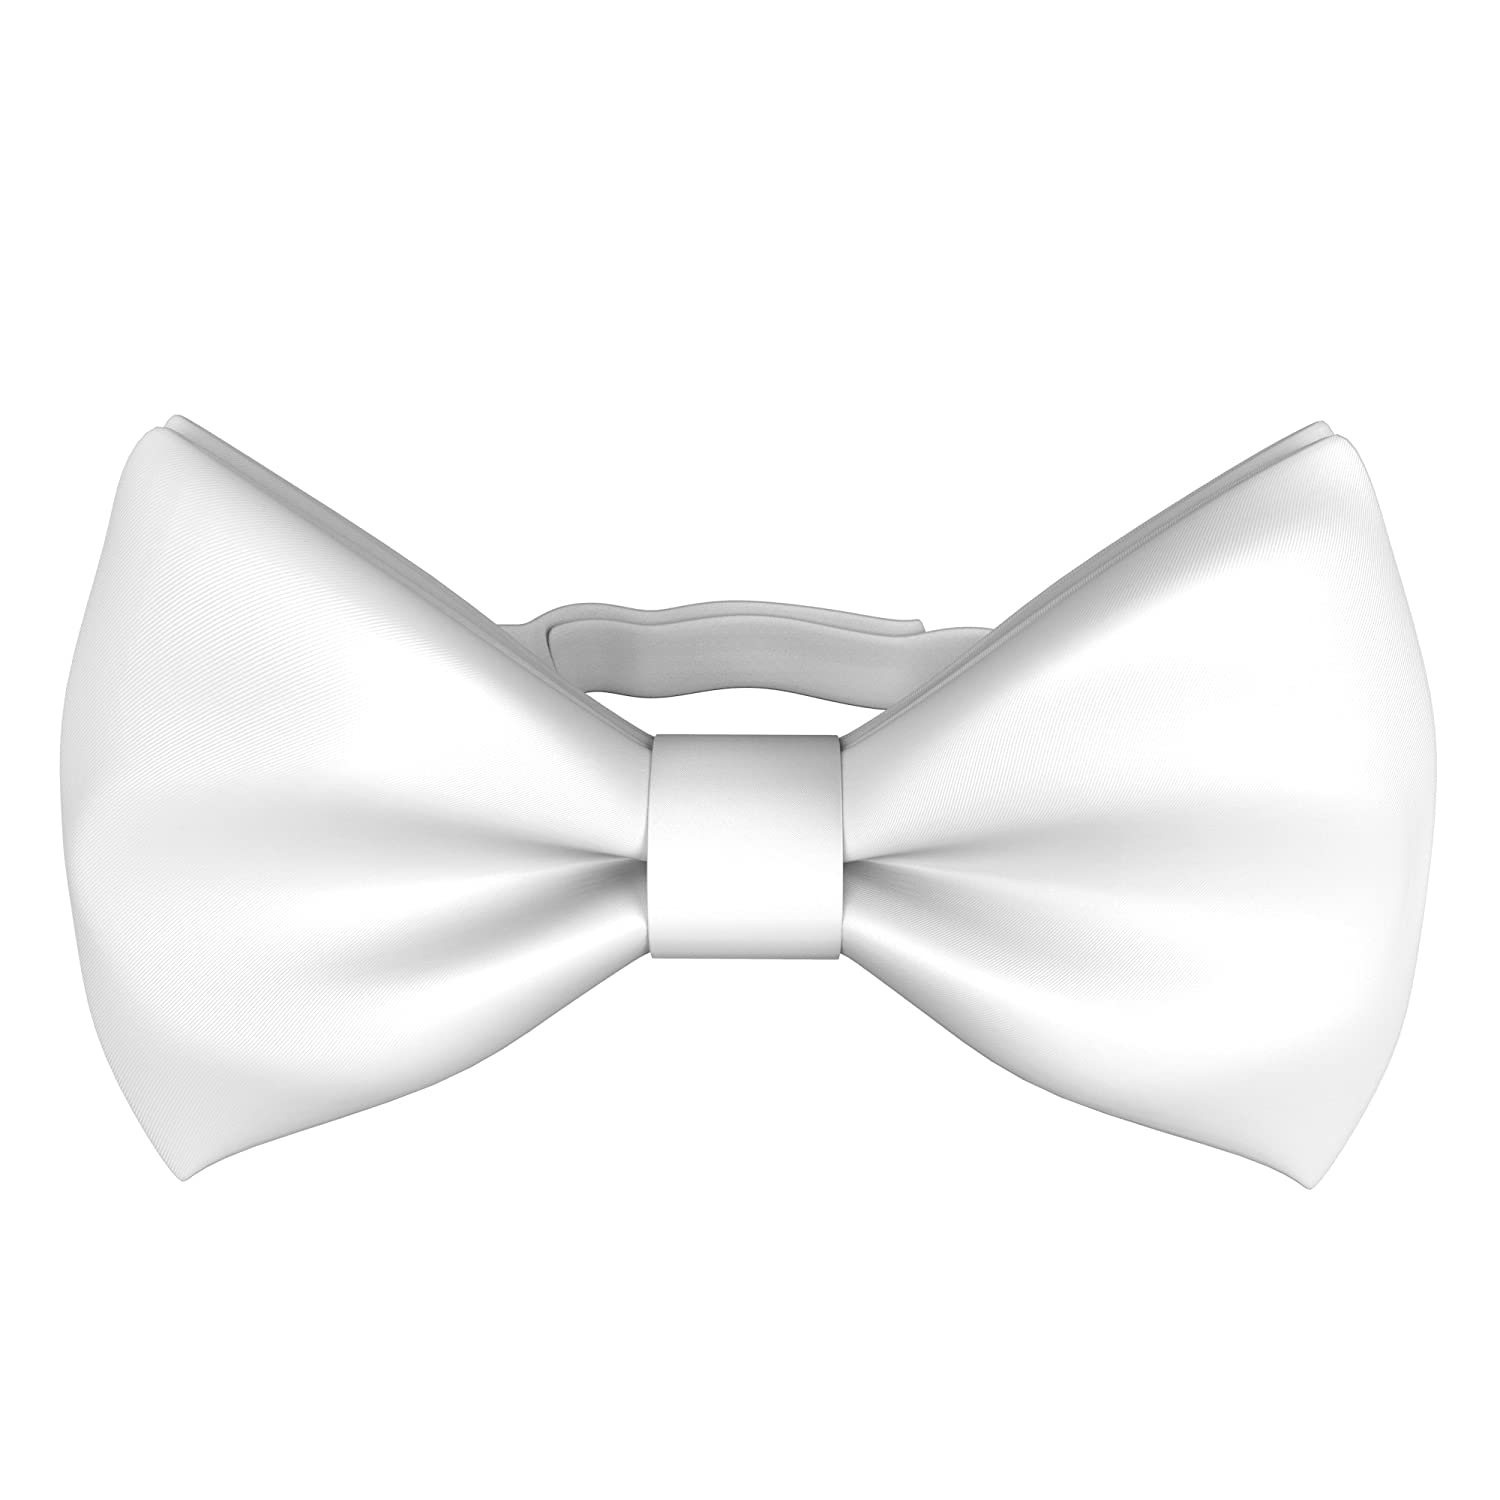 Fly & Dapper Handmade Formal Pre-Tied Tuxedo Bow Tie for Men - Adjustable Bowtie